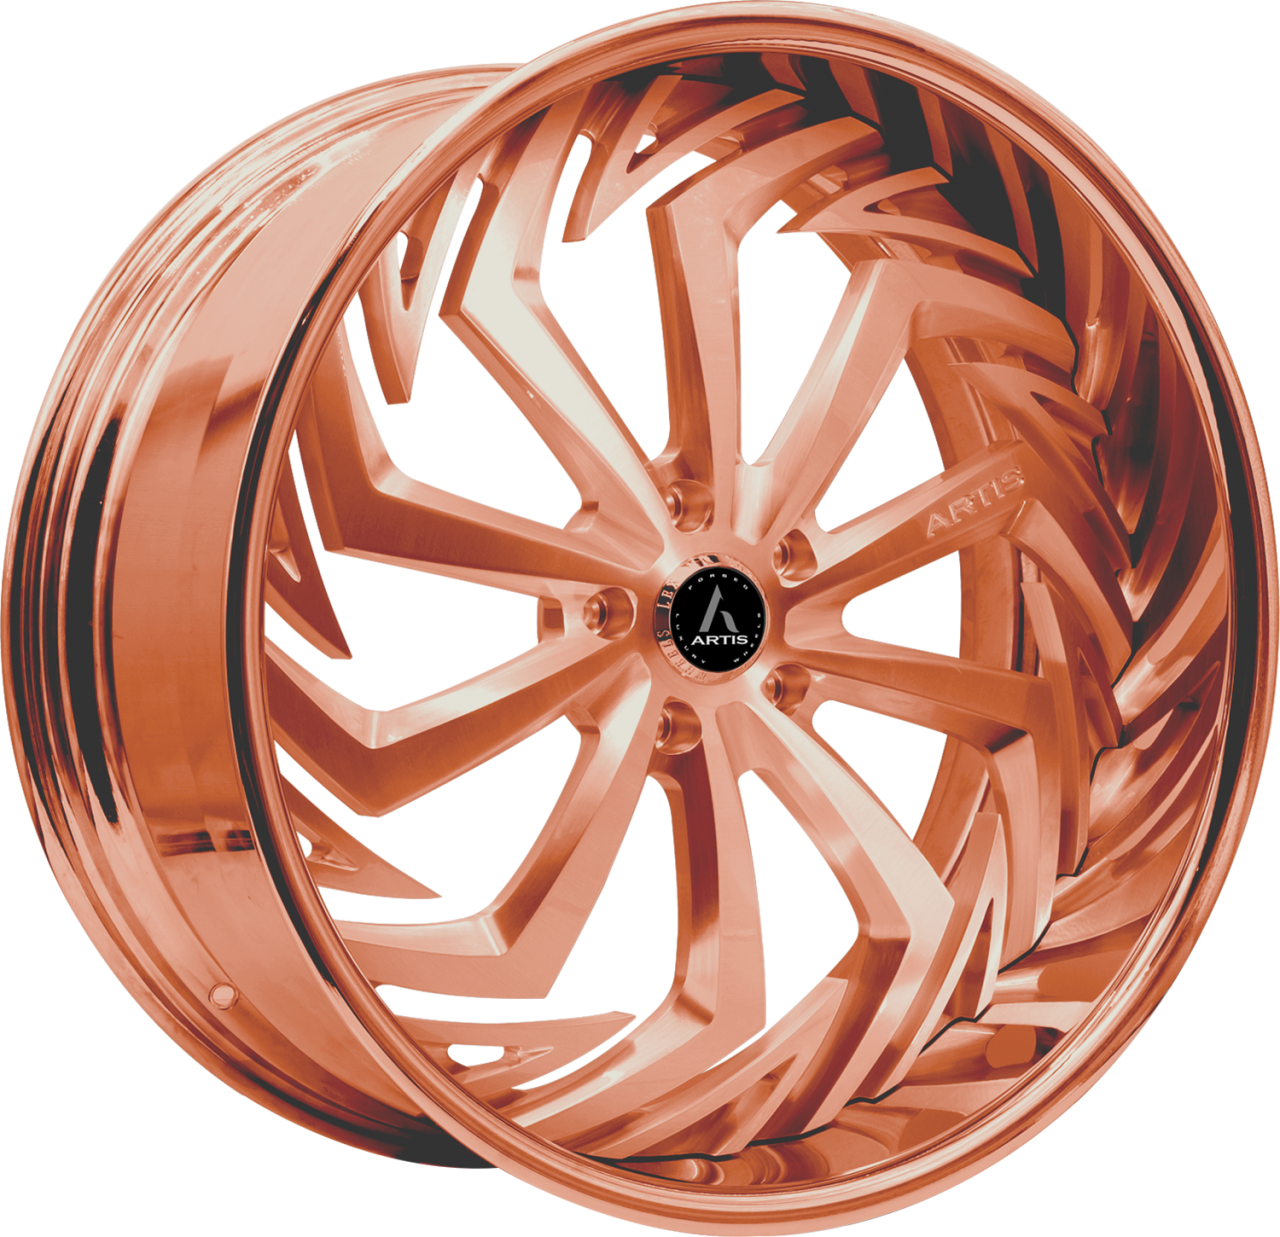 Artis Forged Royal wheel with Custom Rose Gold finish